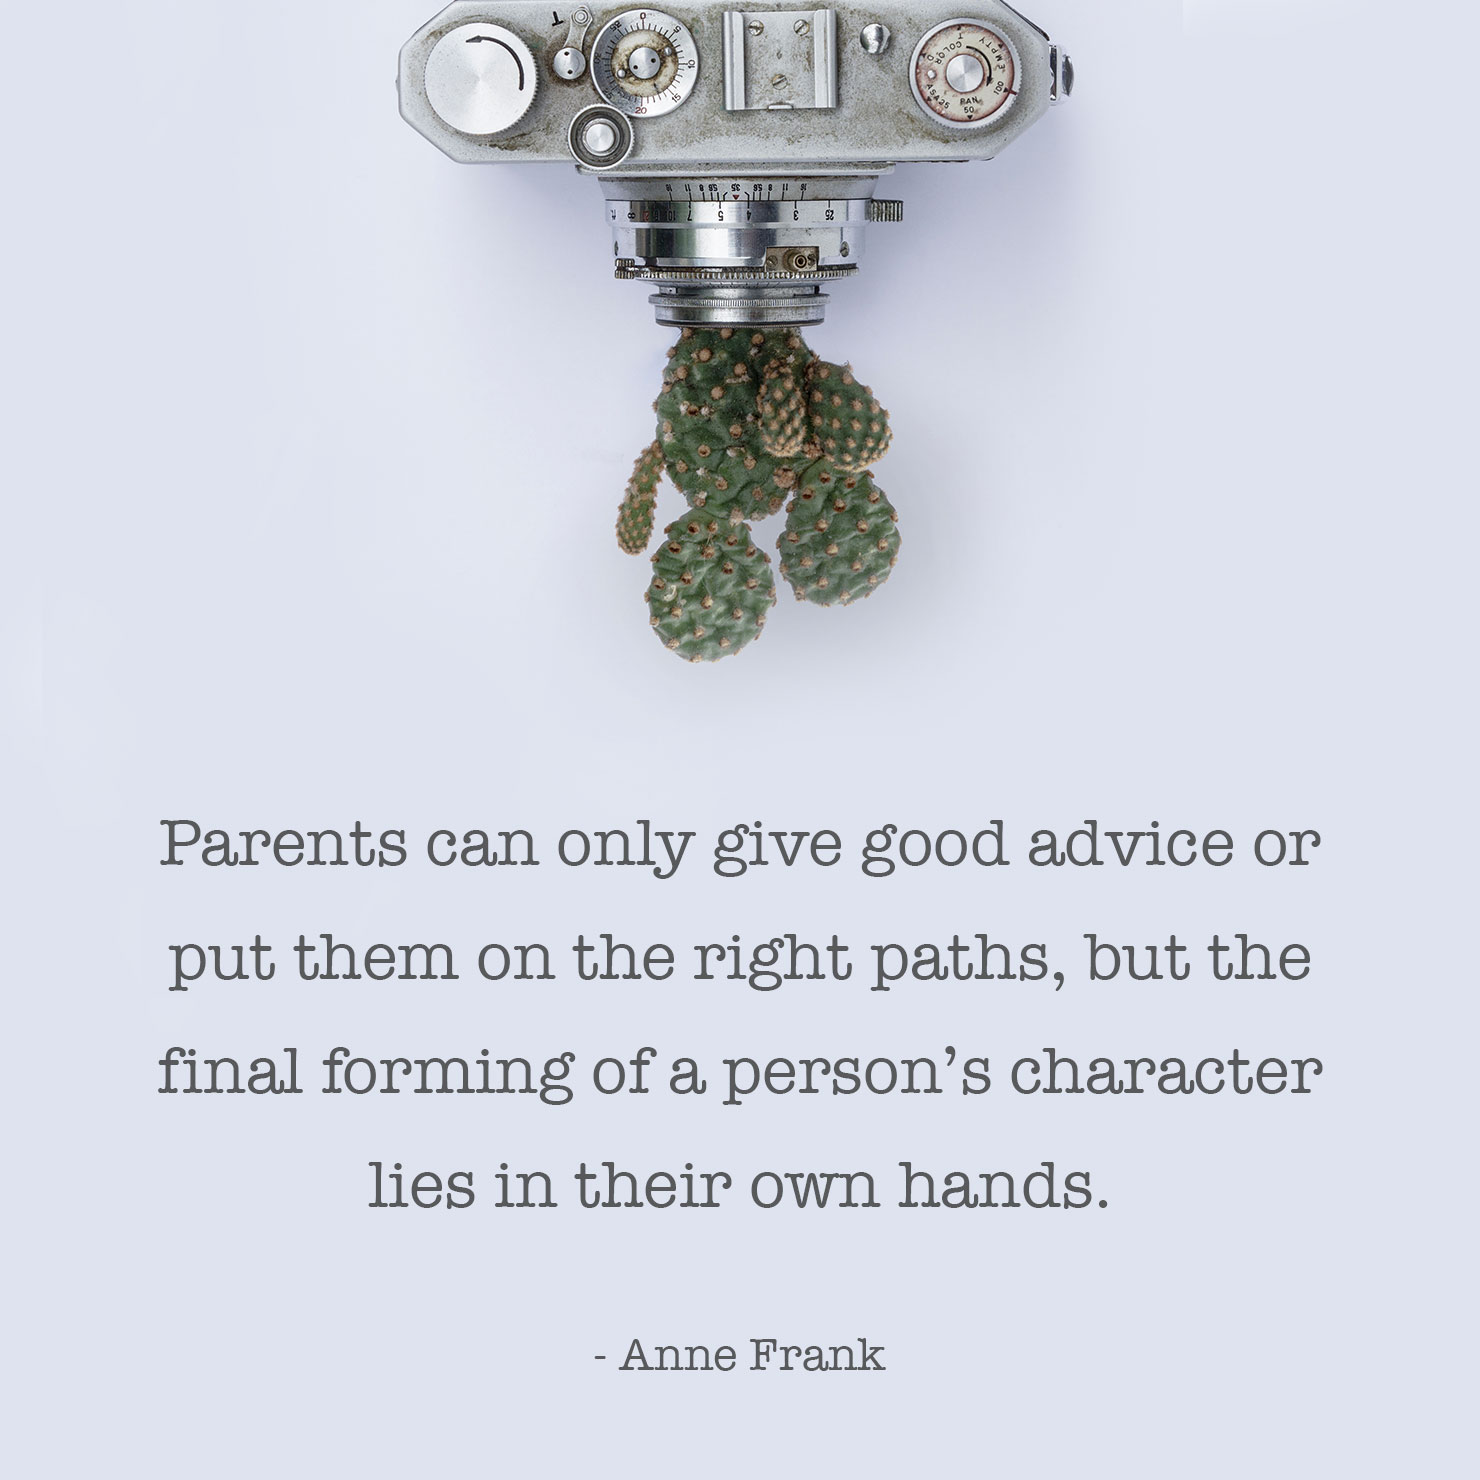 from parents graduation quote: Parents can only give good advice or put them on the right paths, but the final forming of a person's character lies in their own hands -Anne Frank